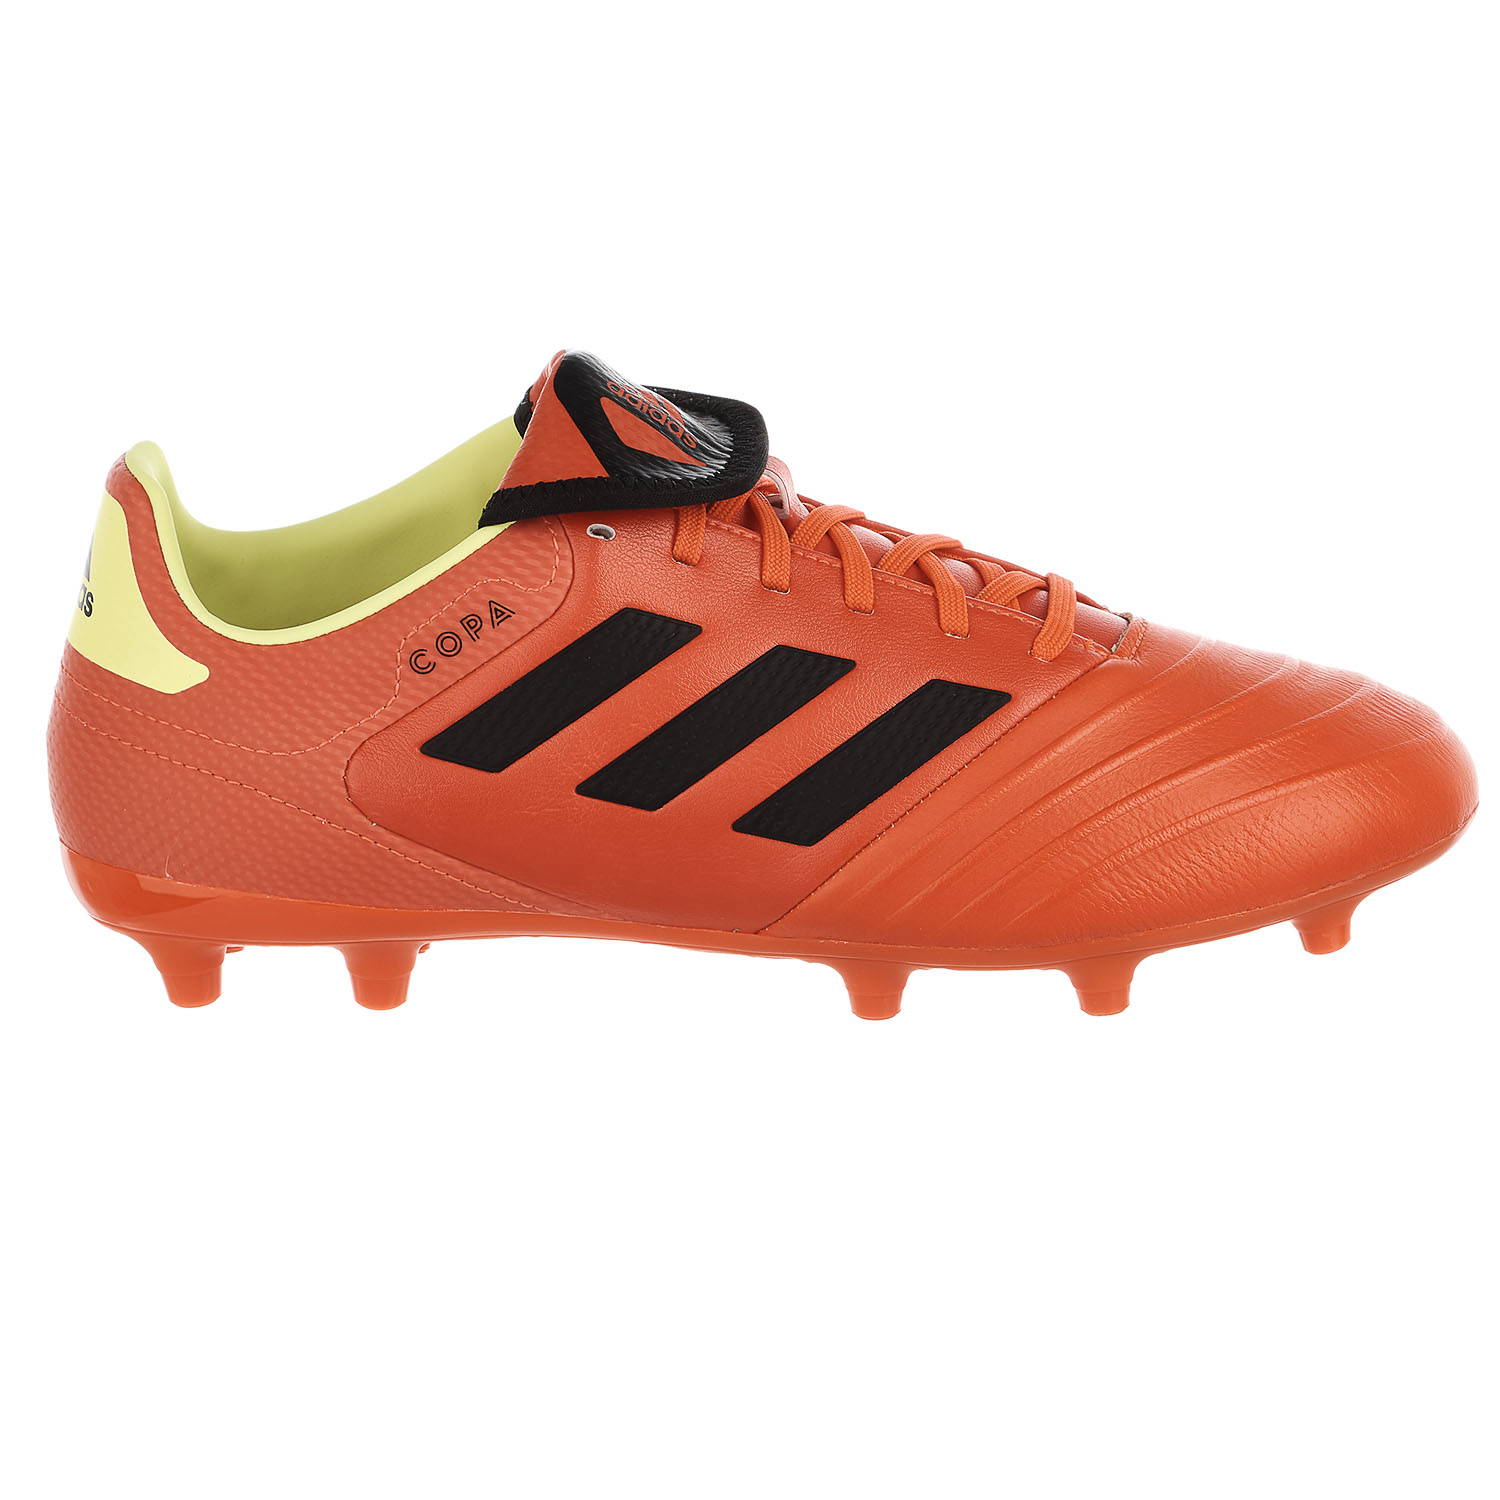 Adidas Copa 18.3 Firm Ground Soccer Shoe Solar Red Black Solar Yellow Mens 9 by Adidas